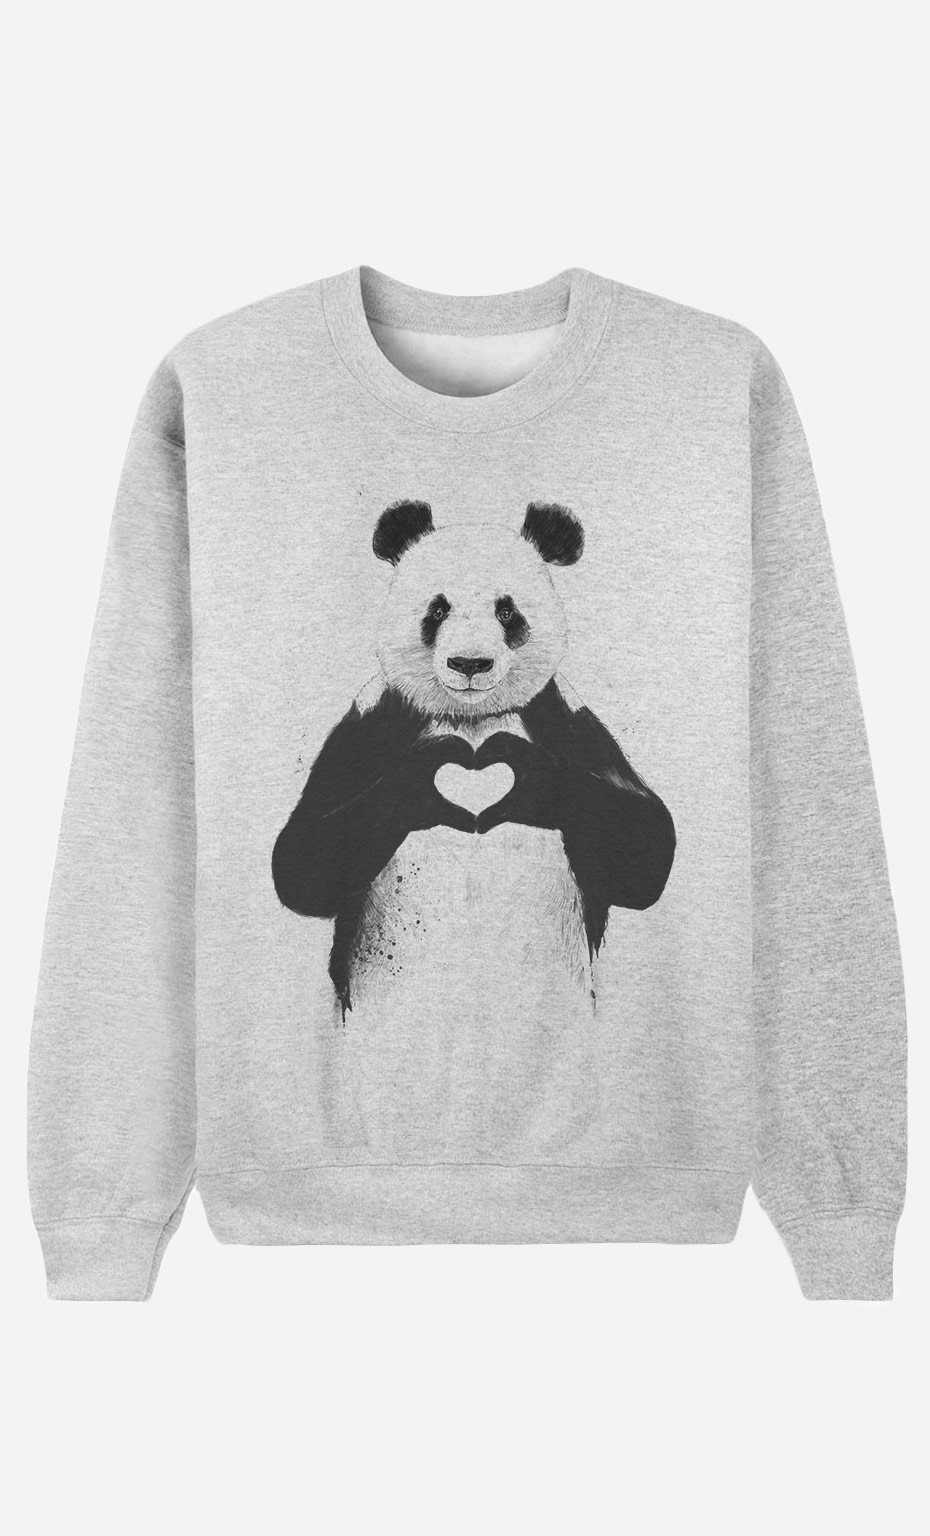 Femme Doux Sweat Wooop Confortable Panda Love Et AqBvgqnwd